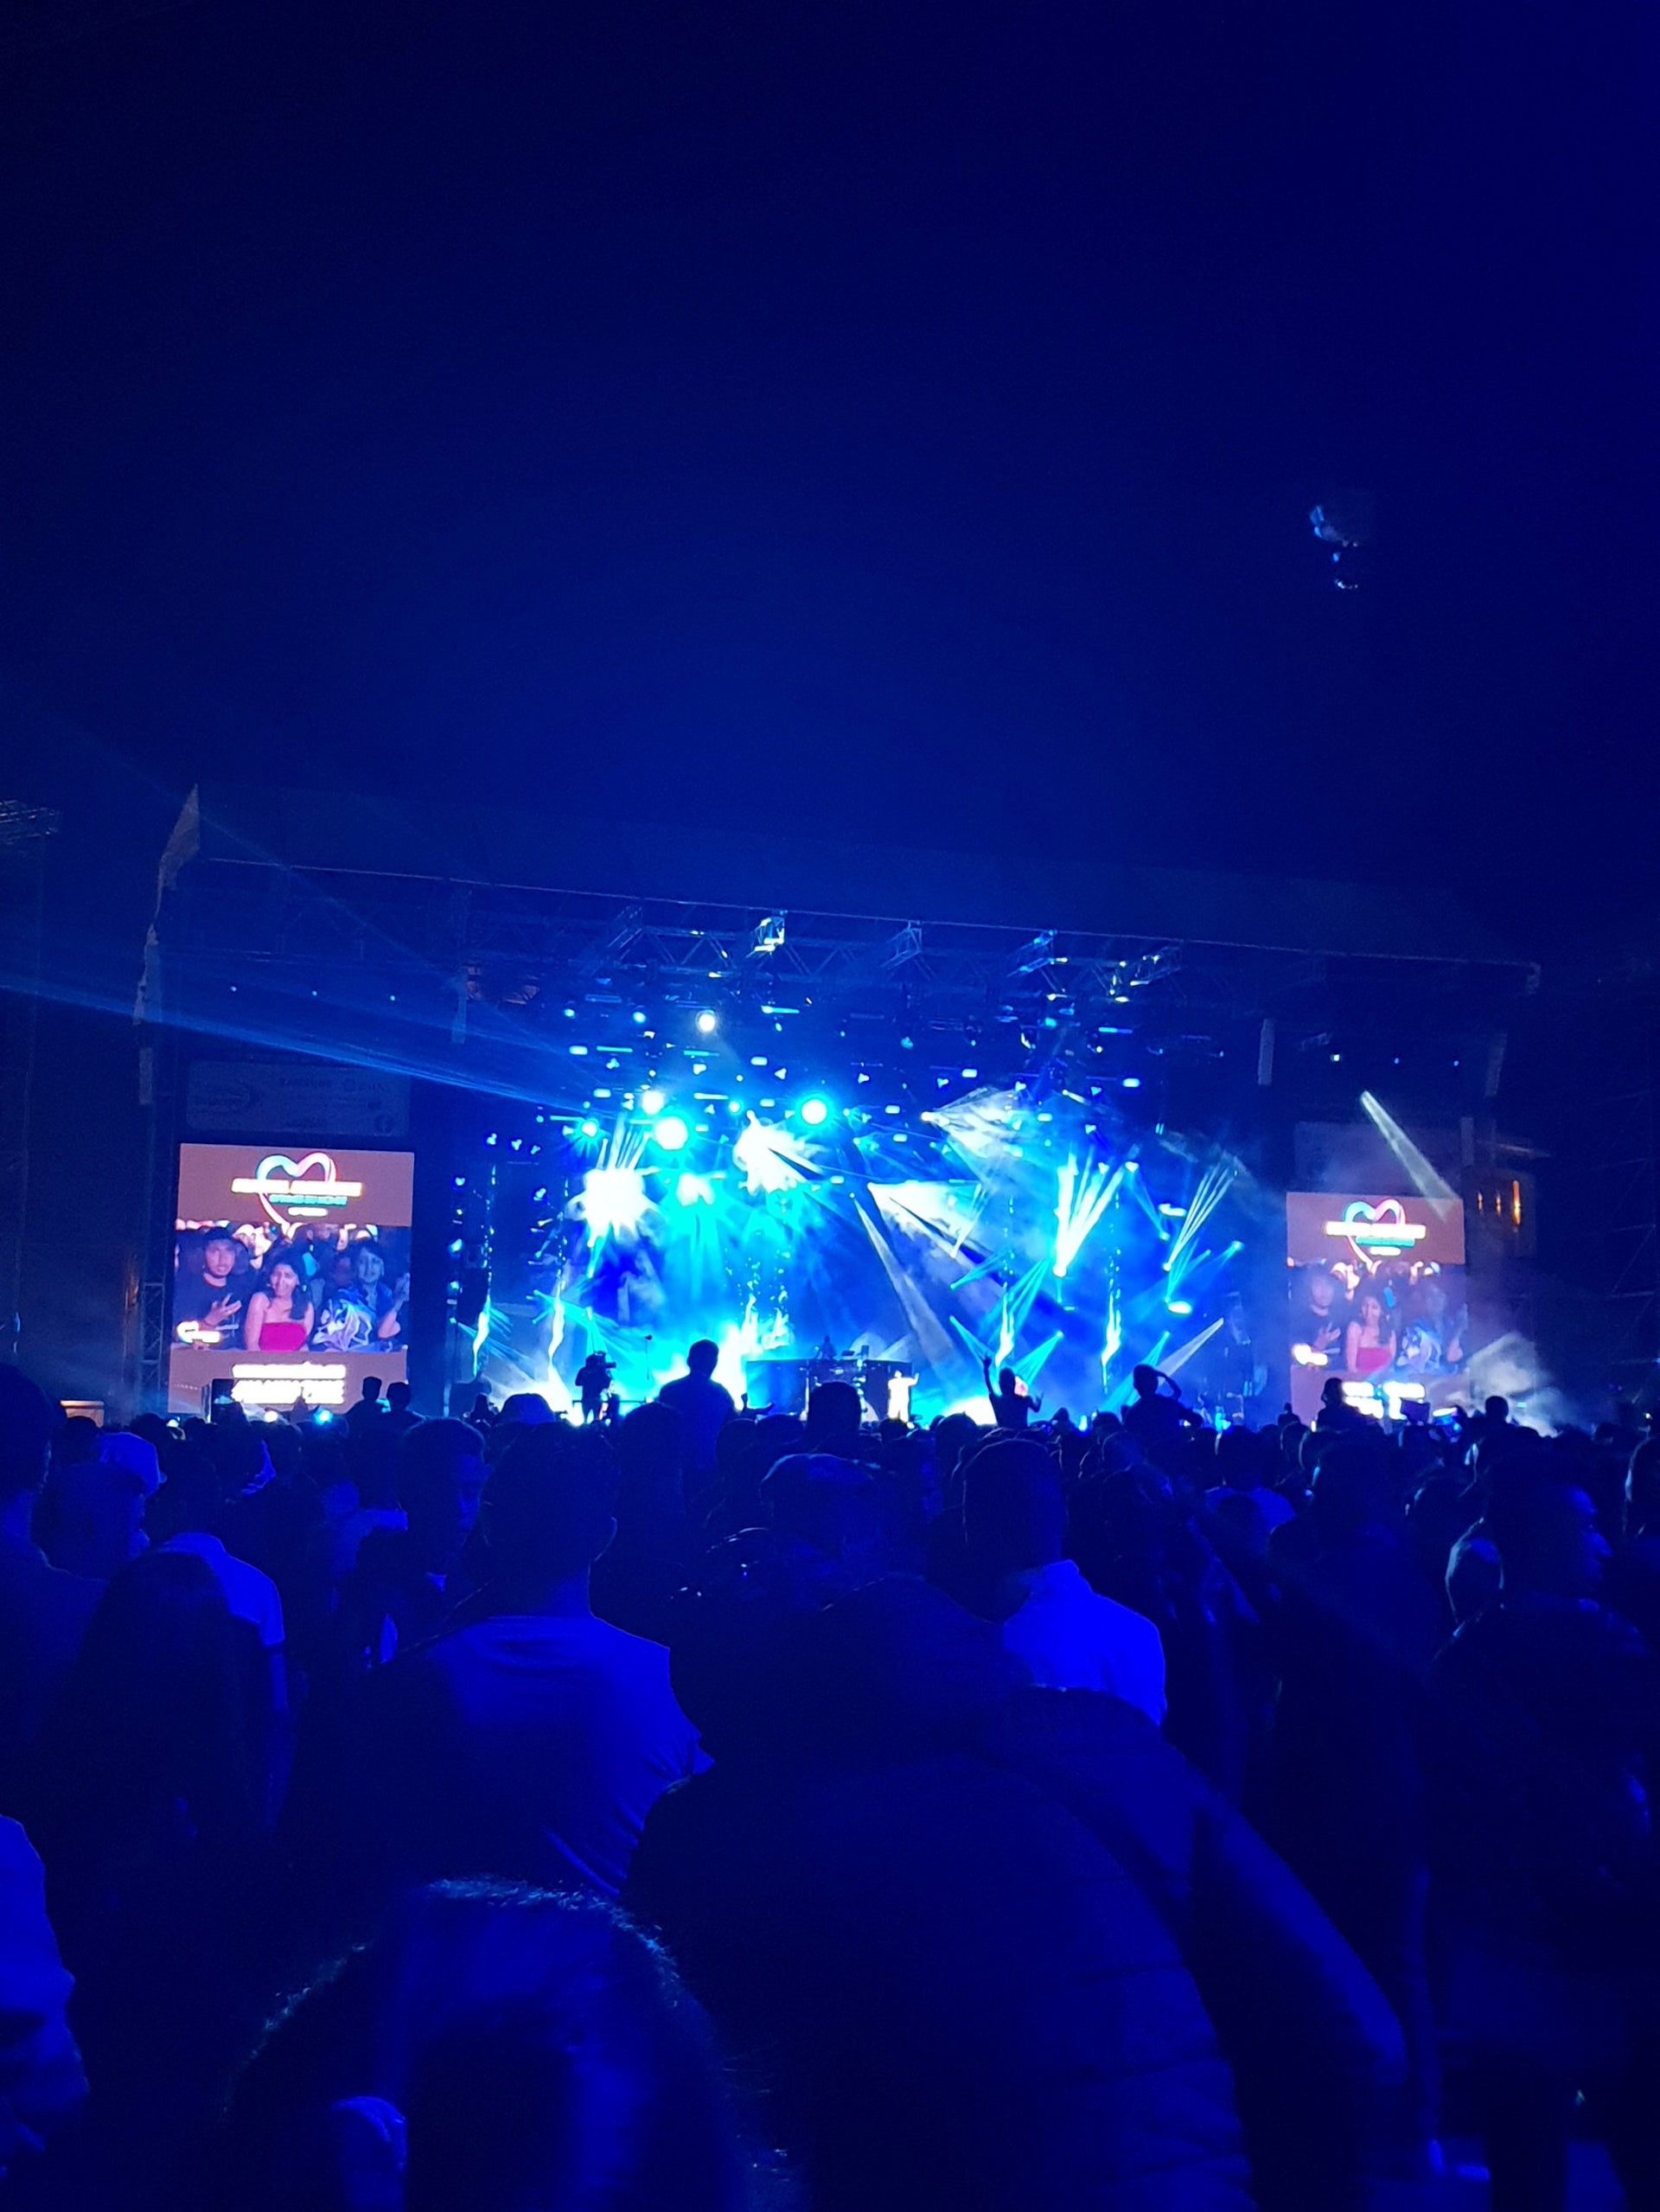 Migos' concert at the the Mawazine Festival in Rabat.